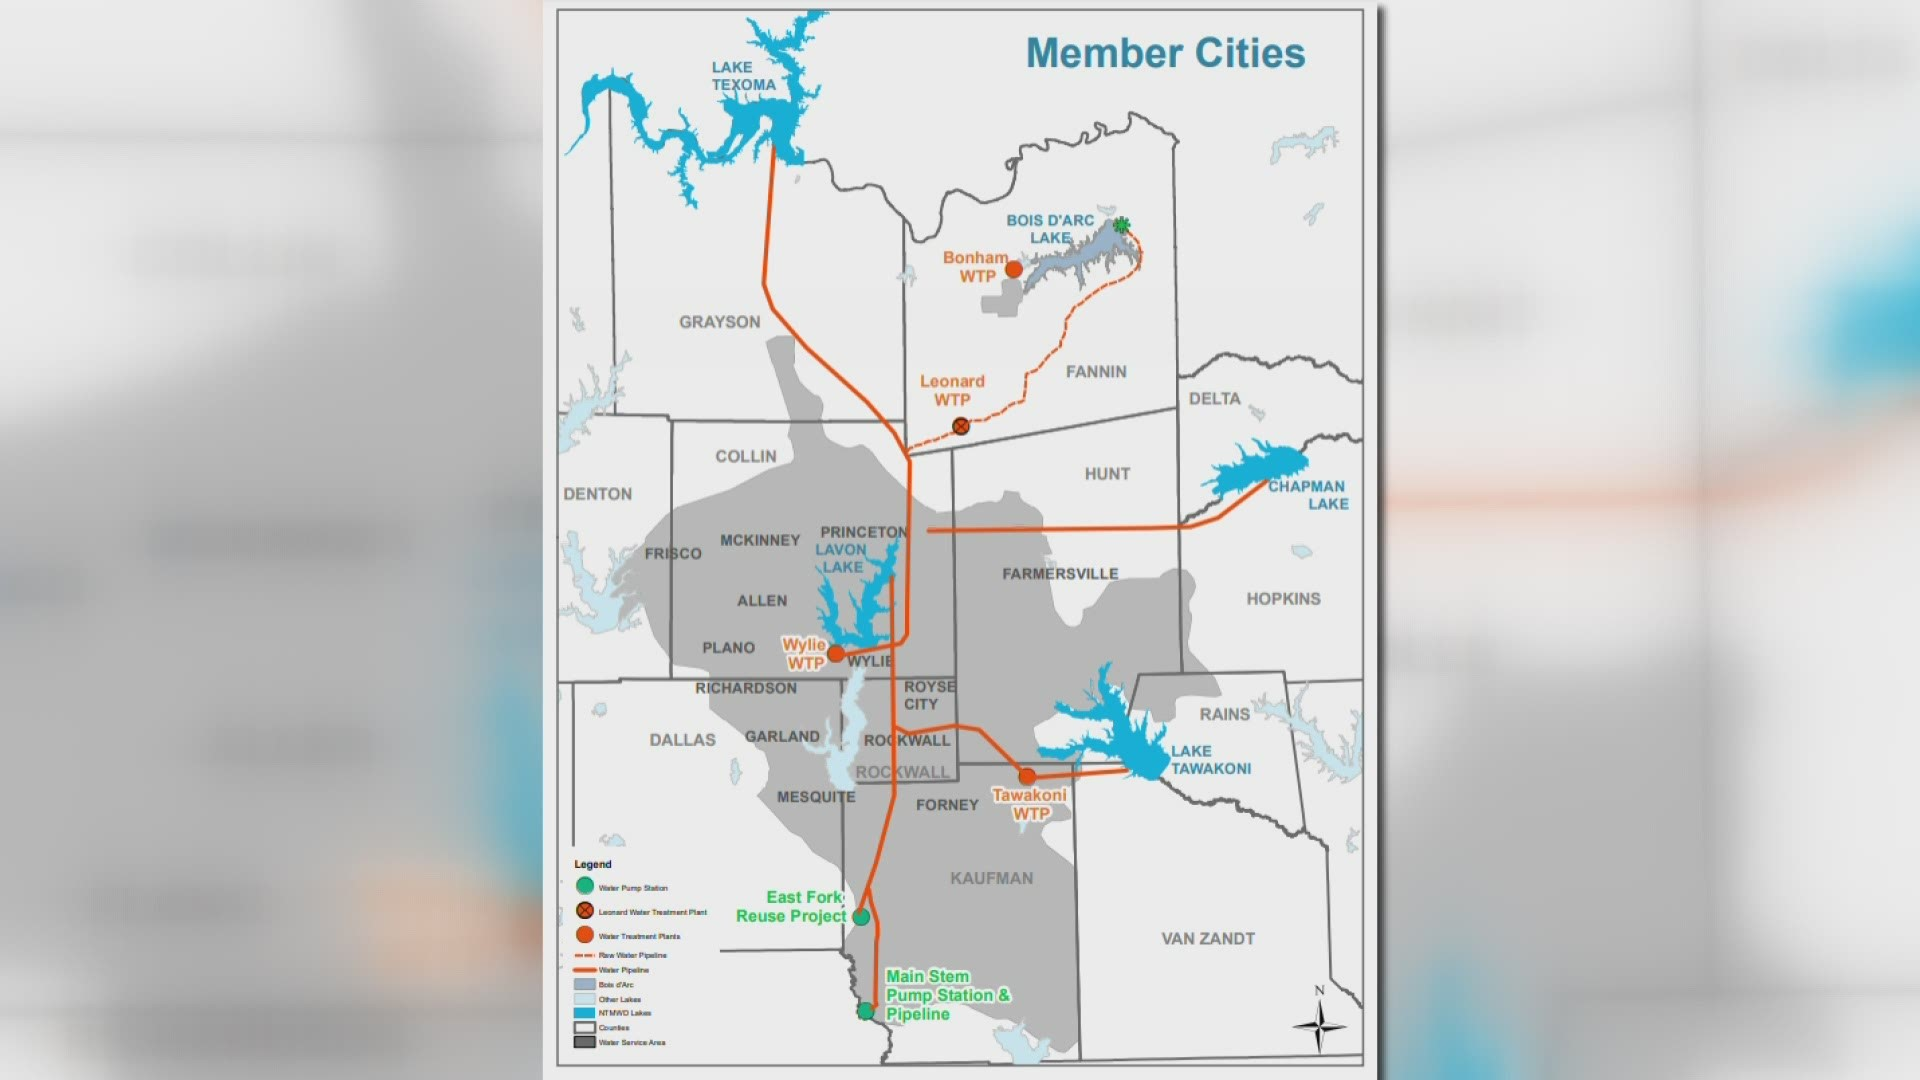 Texas Crisis Updates Power Water Gas Outage Info For Feb 18 Wfaa Com